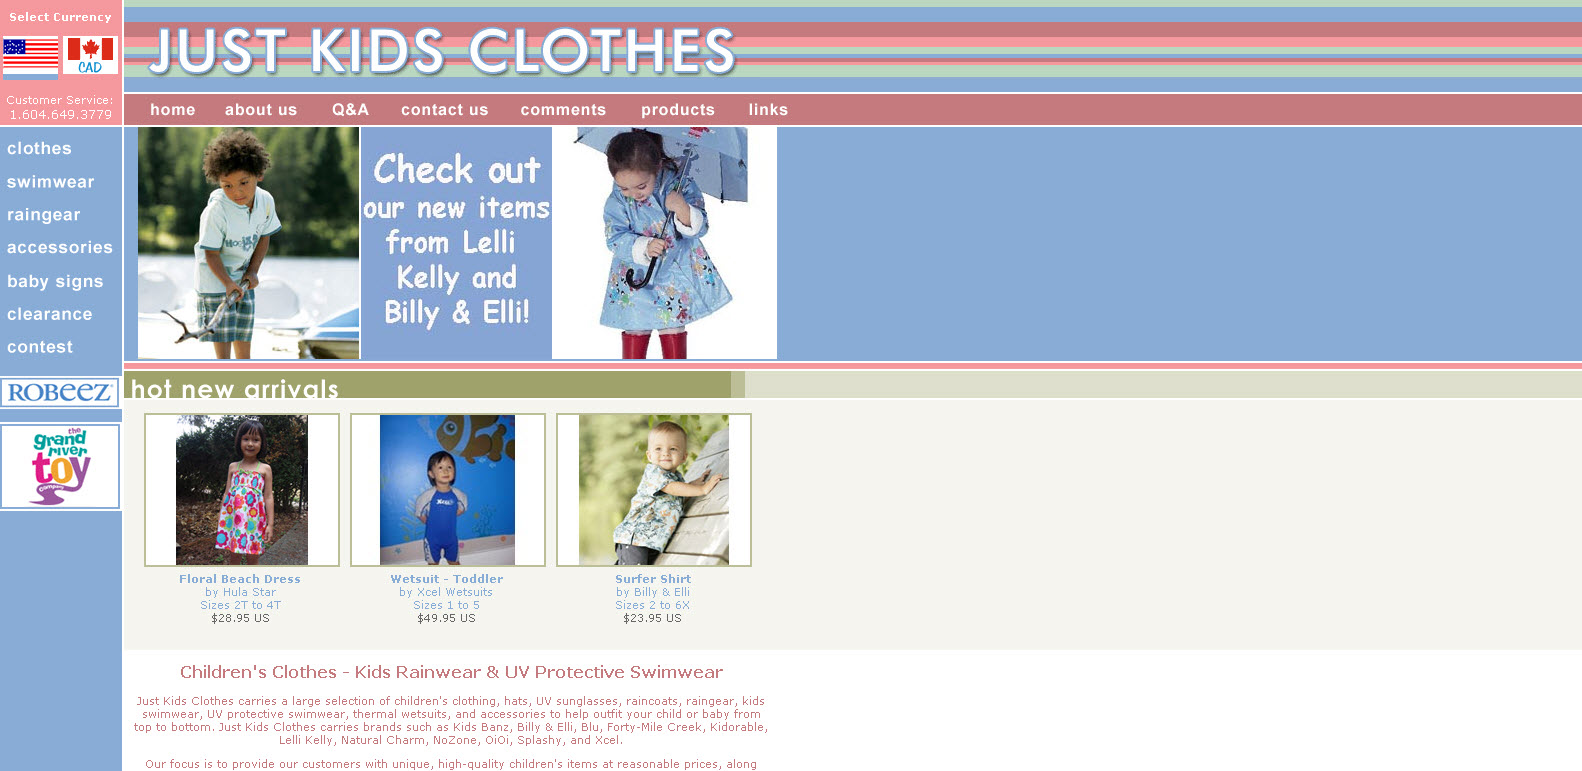 Just Kids Clothes